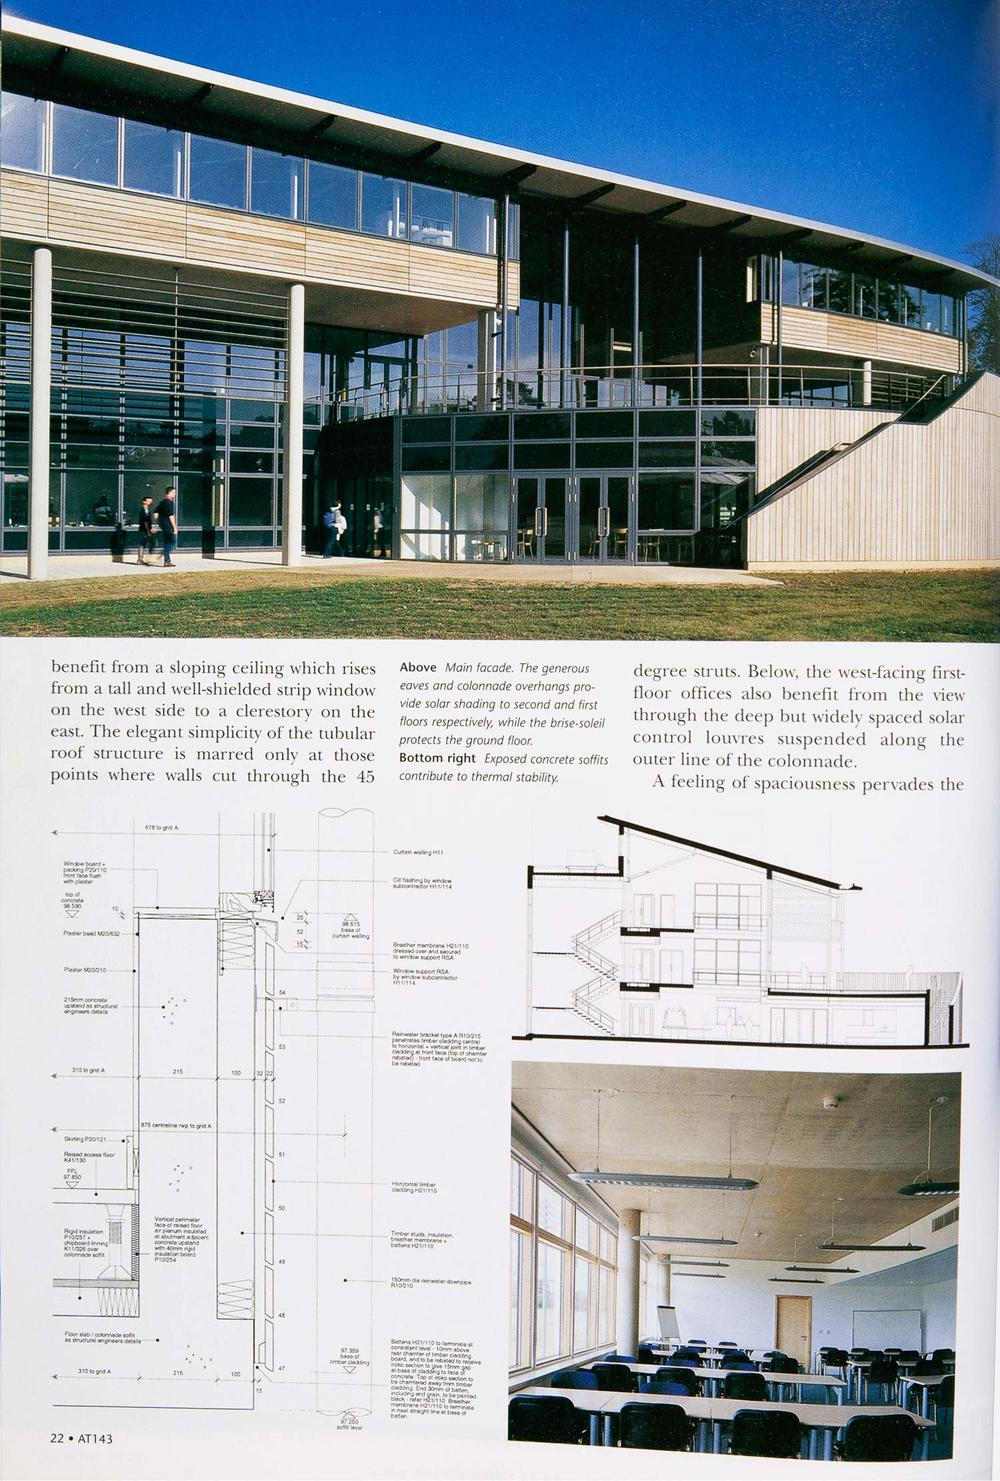 Architecture Today - The Royal Veterinary College